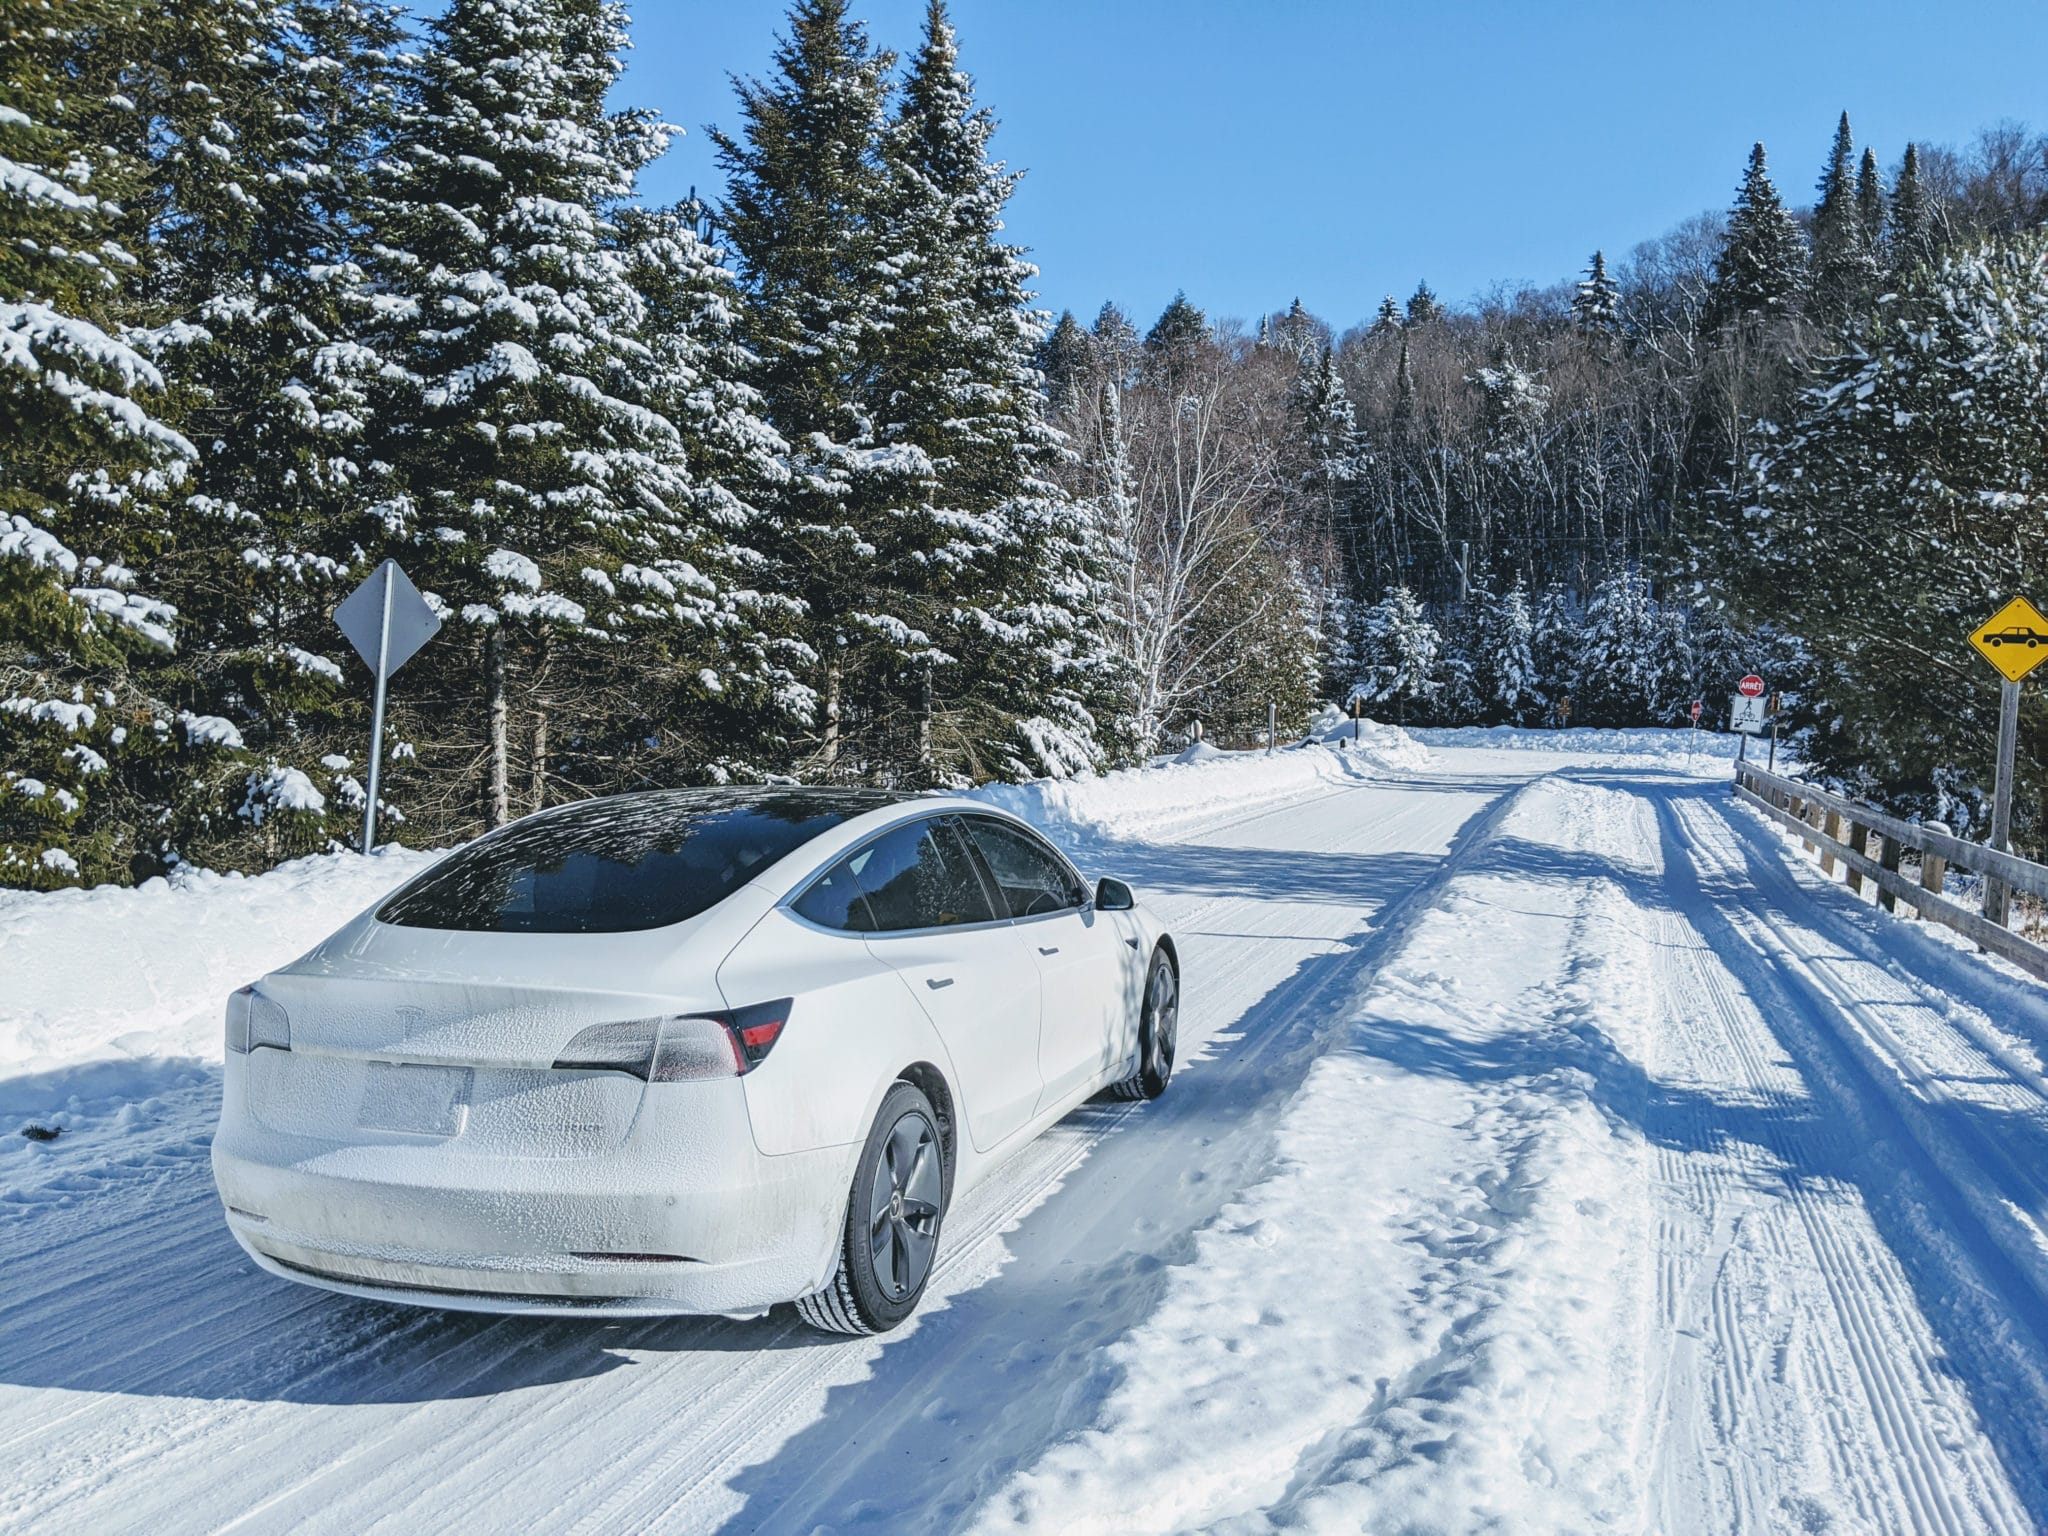 Tesla in Parc national du Mont-Tremblant